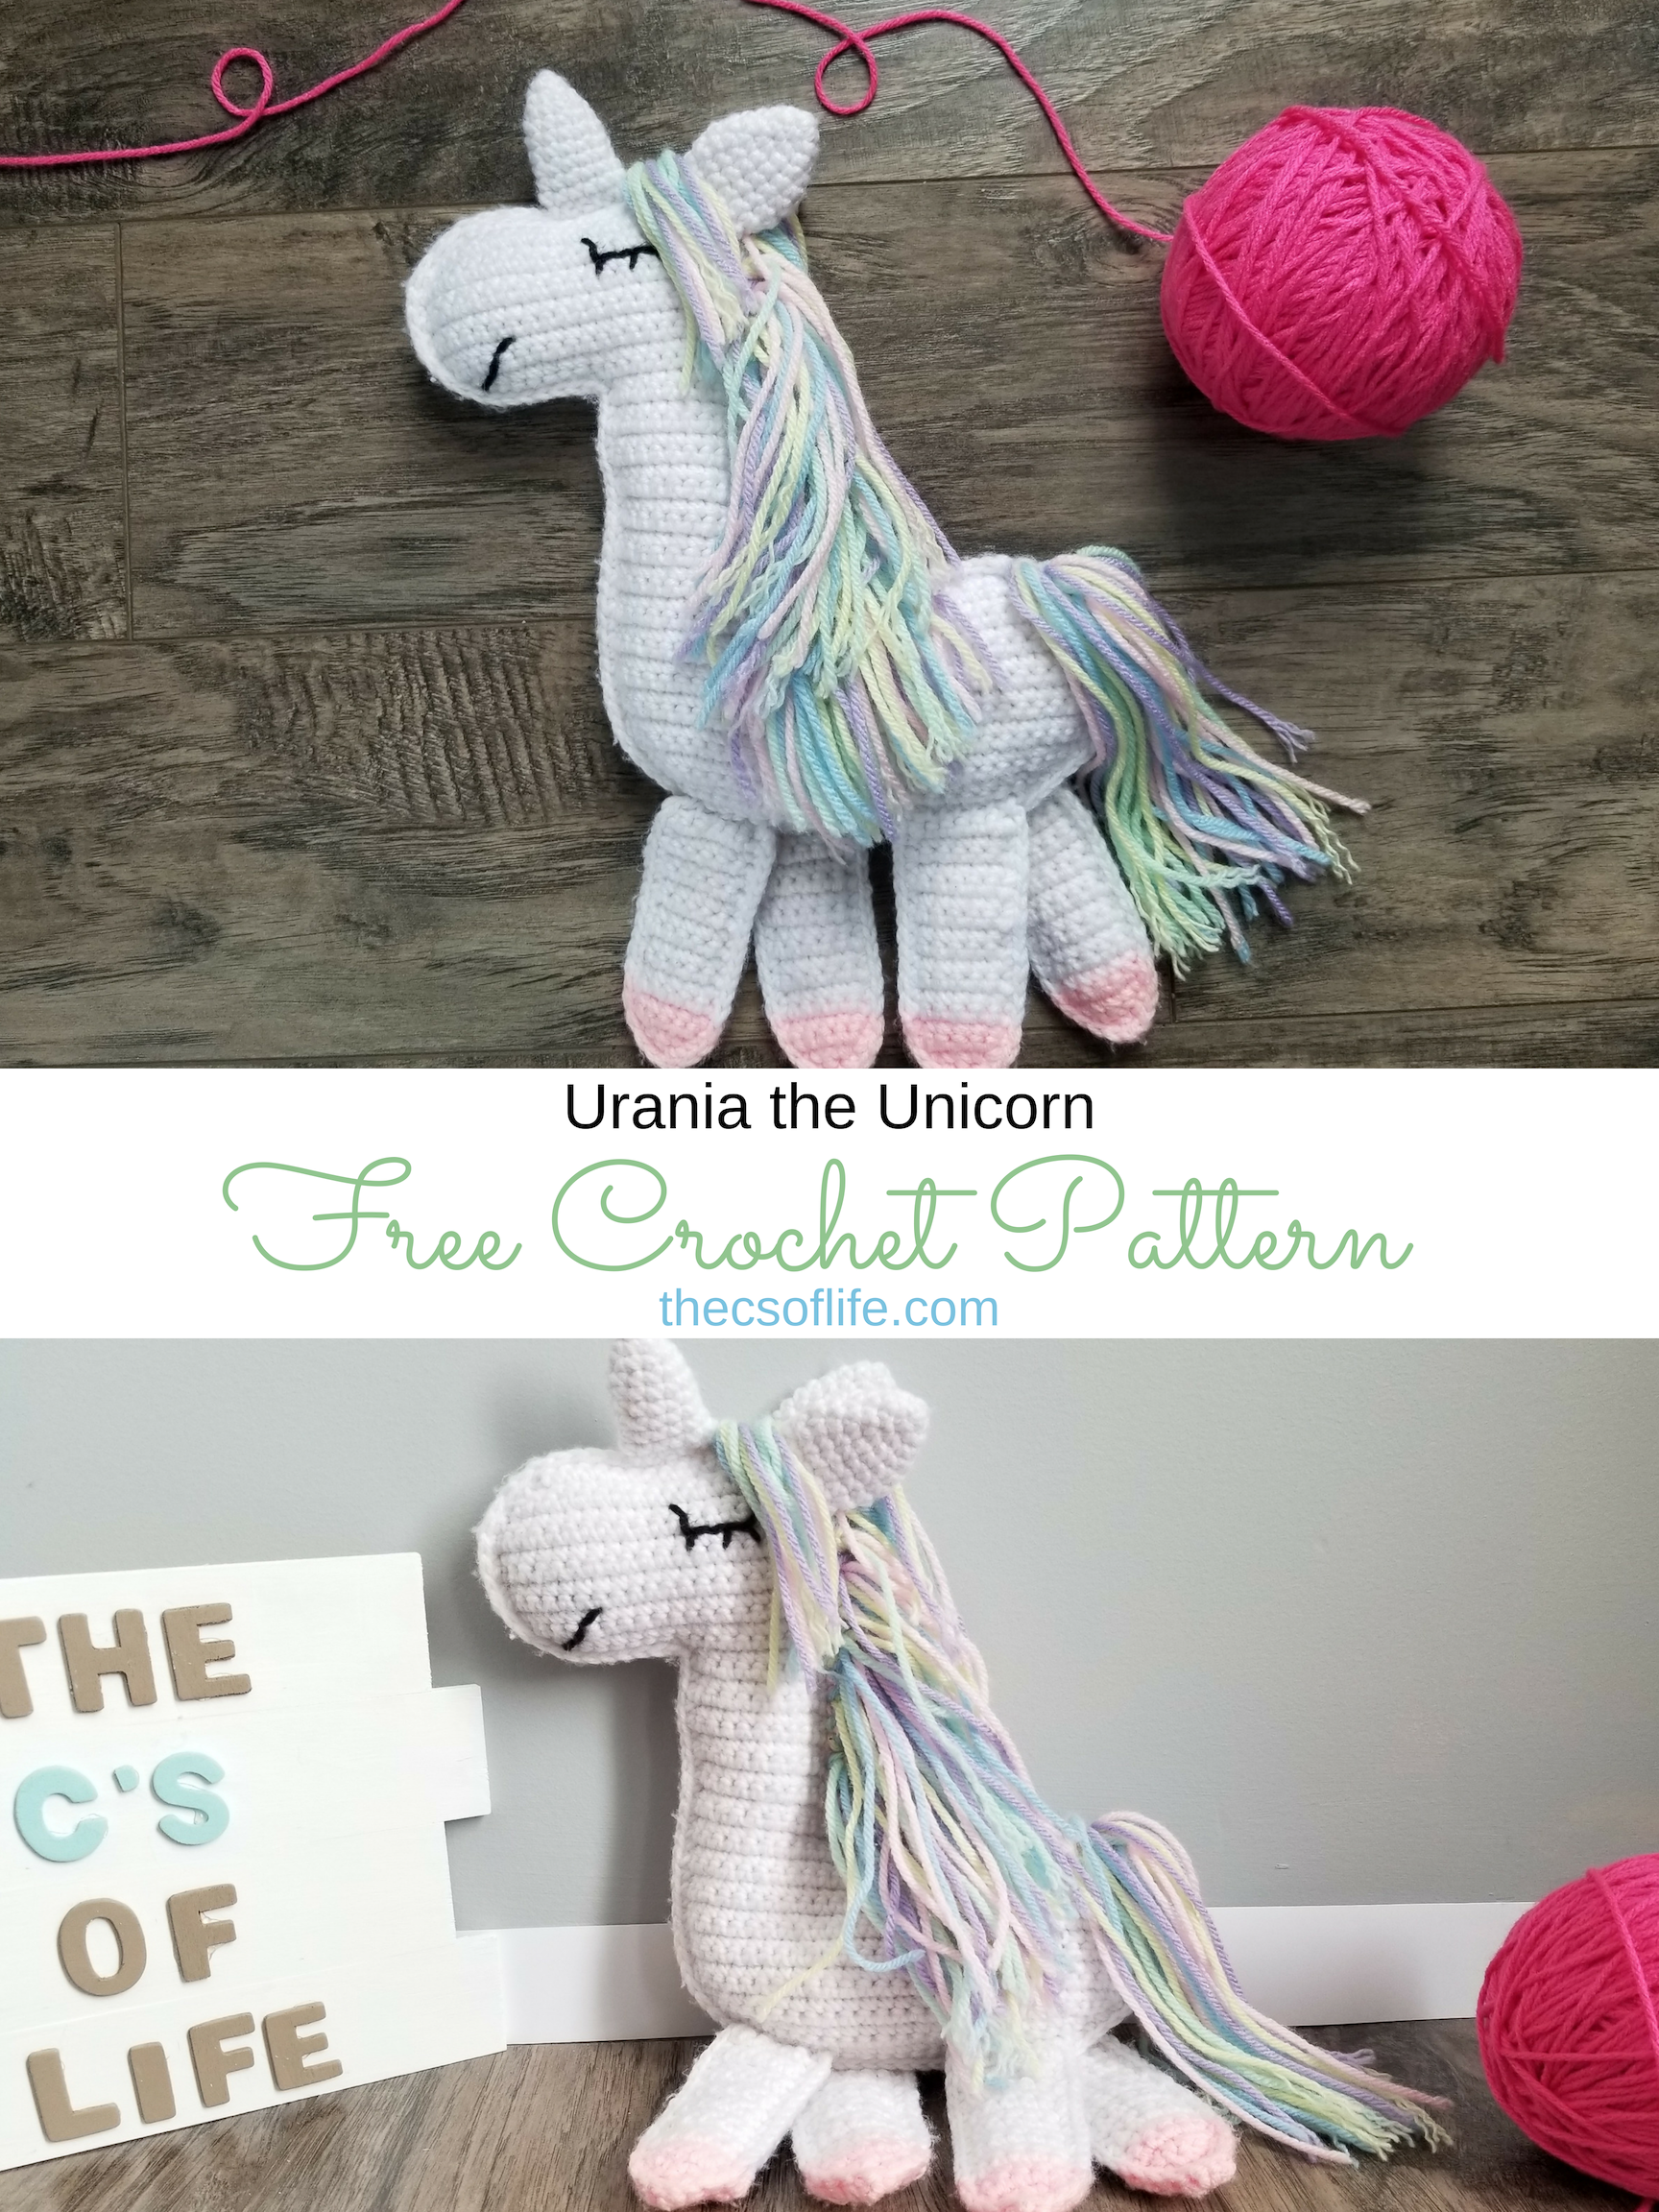 Urania the Unicorn - Free Crochet Pattern